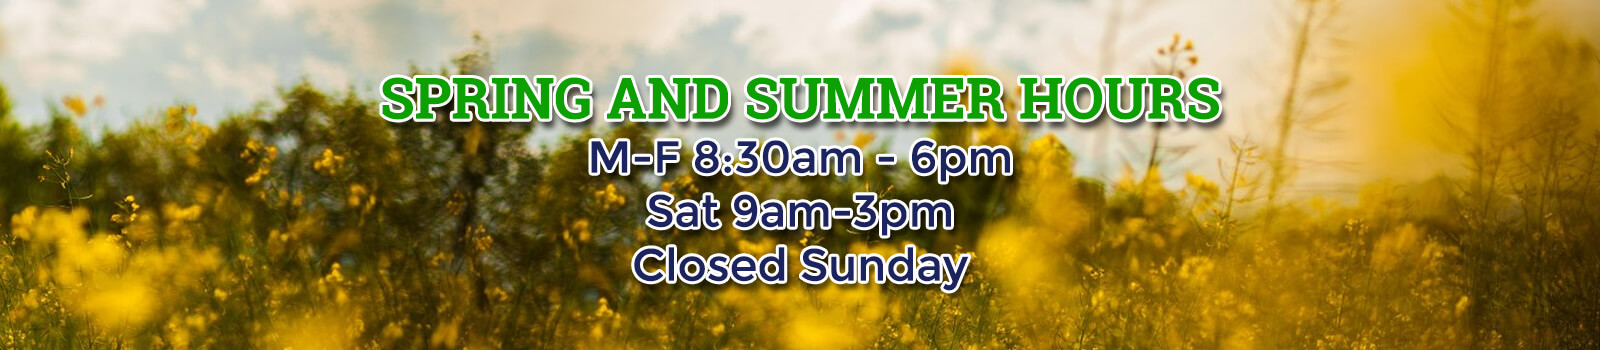 Spring and Summer Hours